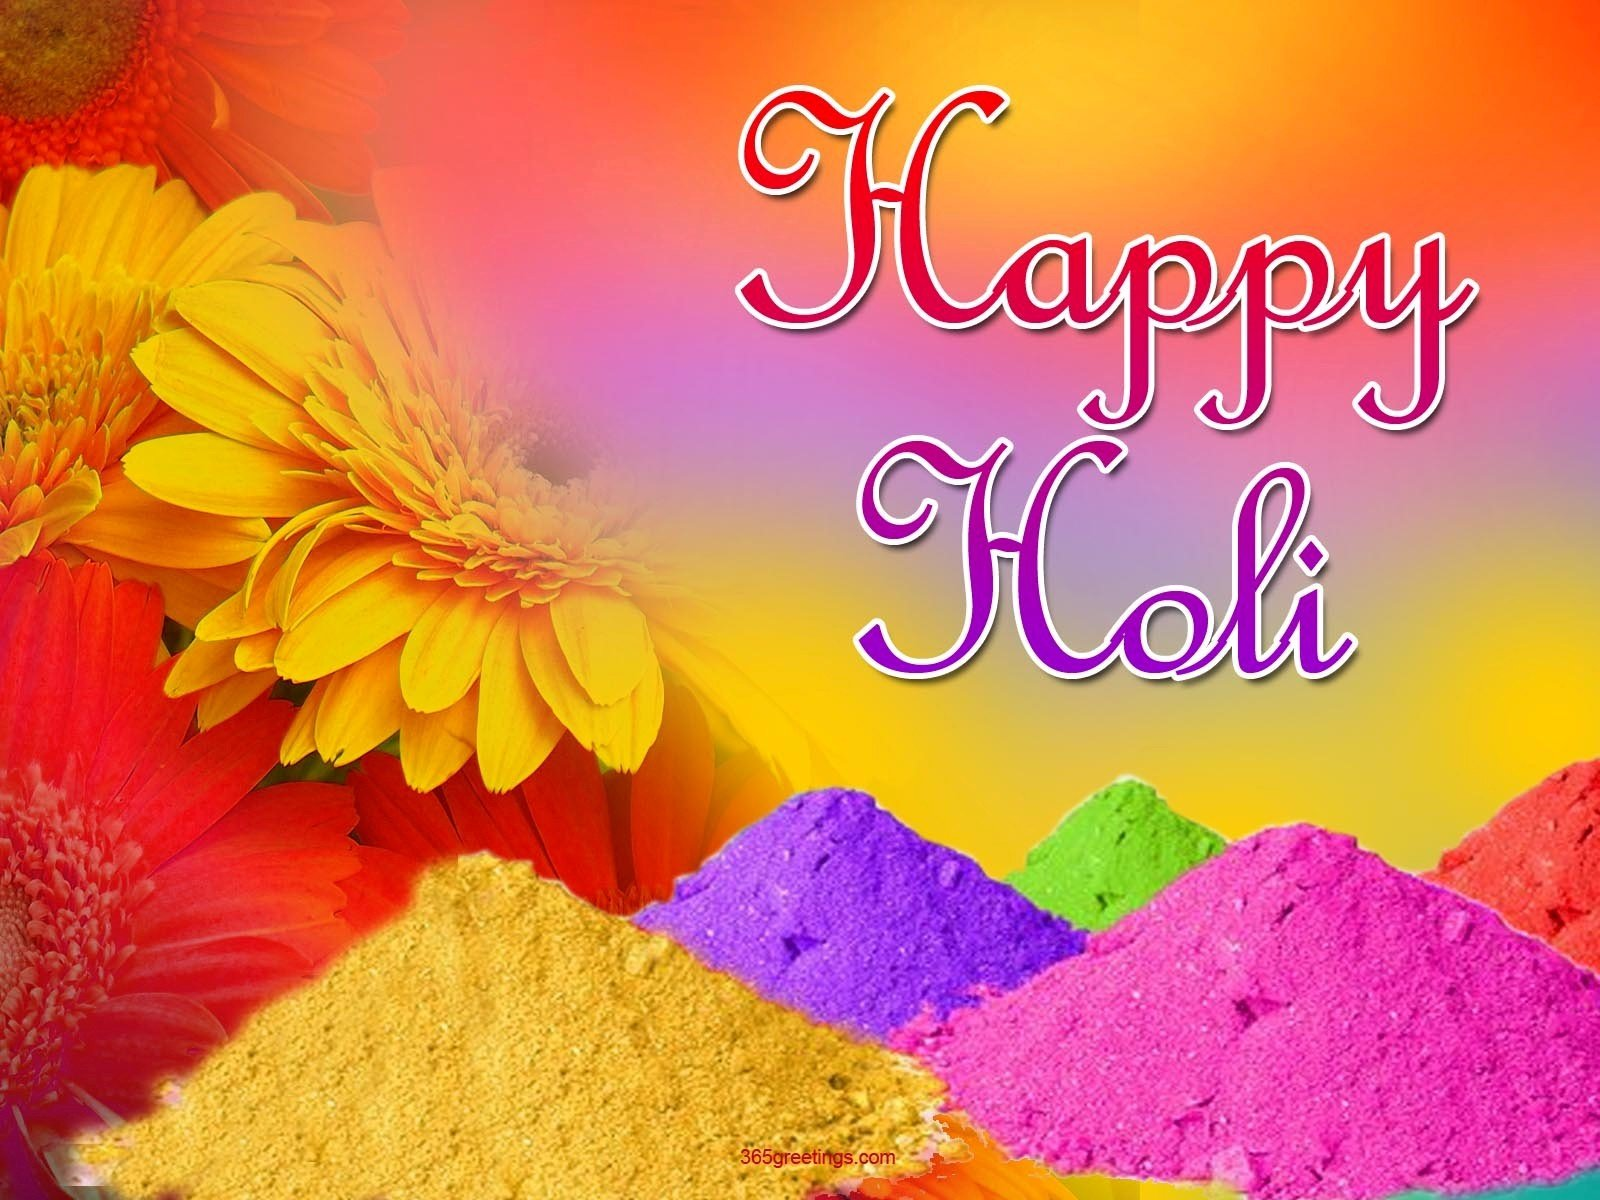 animated happy holi image With Resolutions 16001200 Pixel 1600x1200